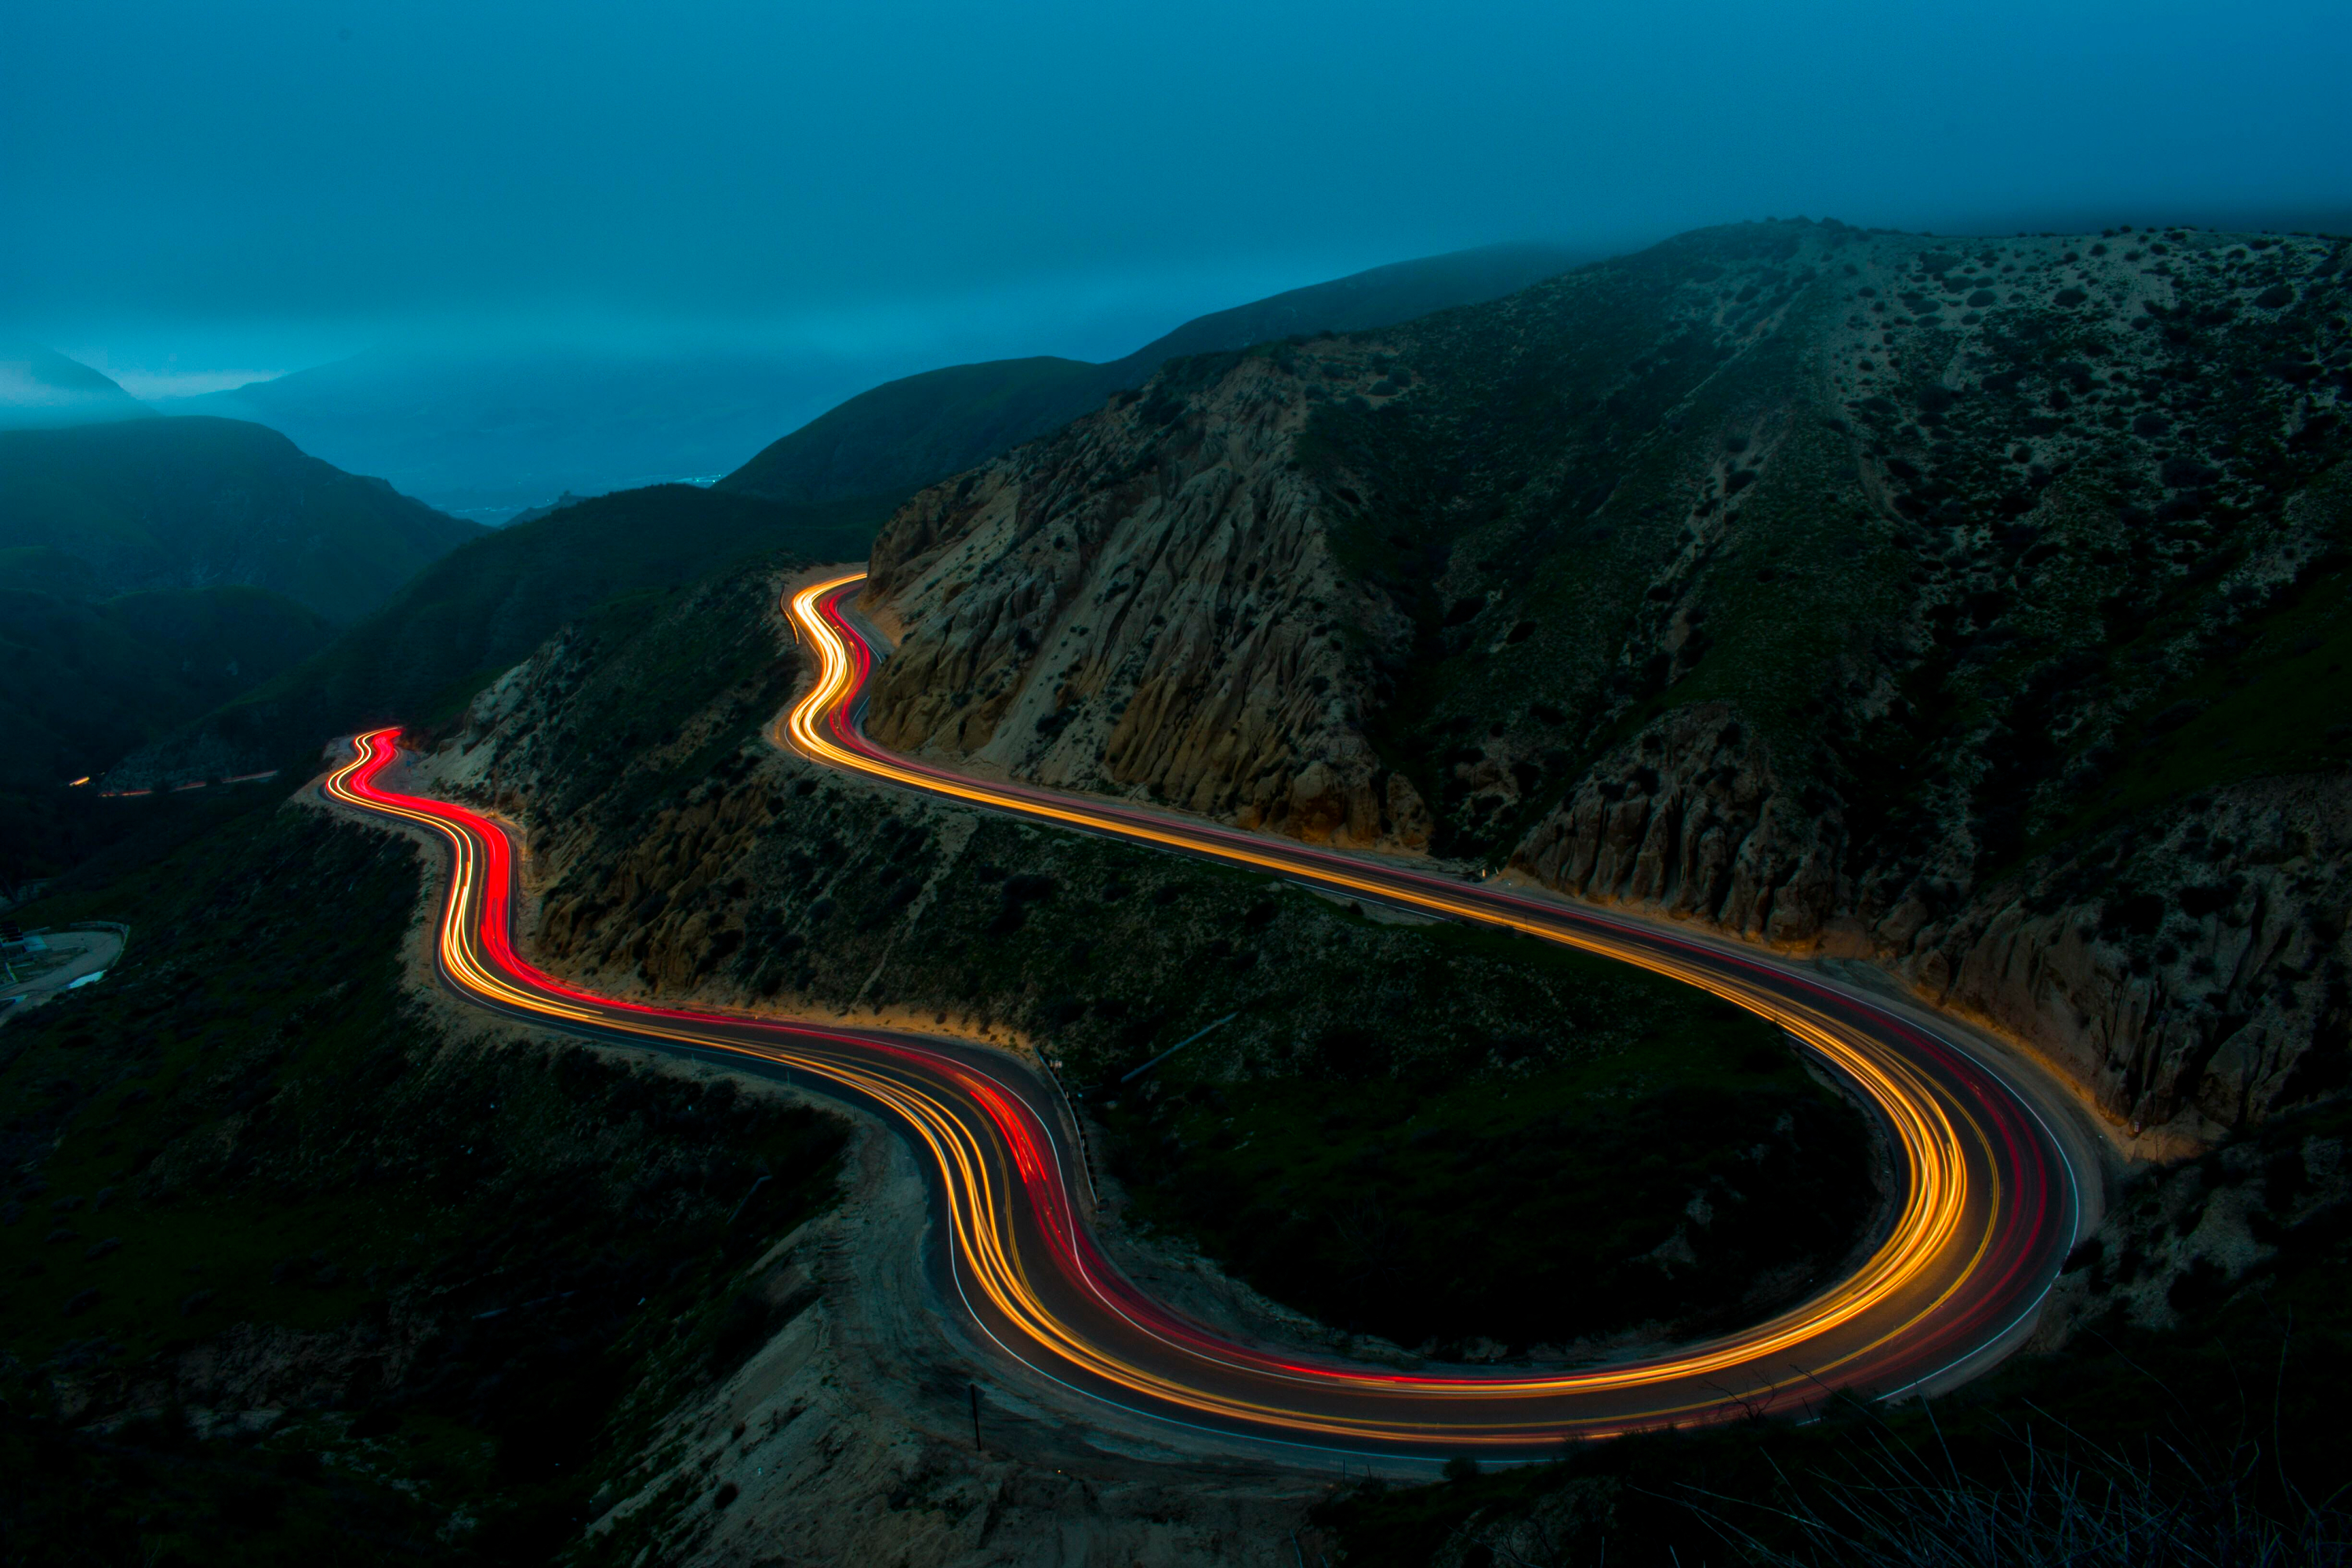 Mountain Road At Night Hd Wallpaper Background Image 3000x2000